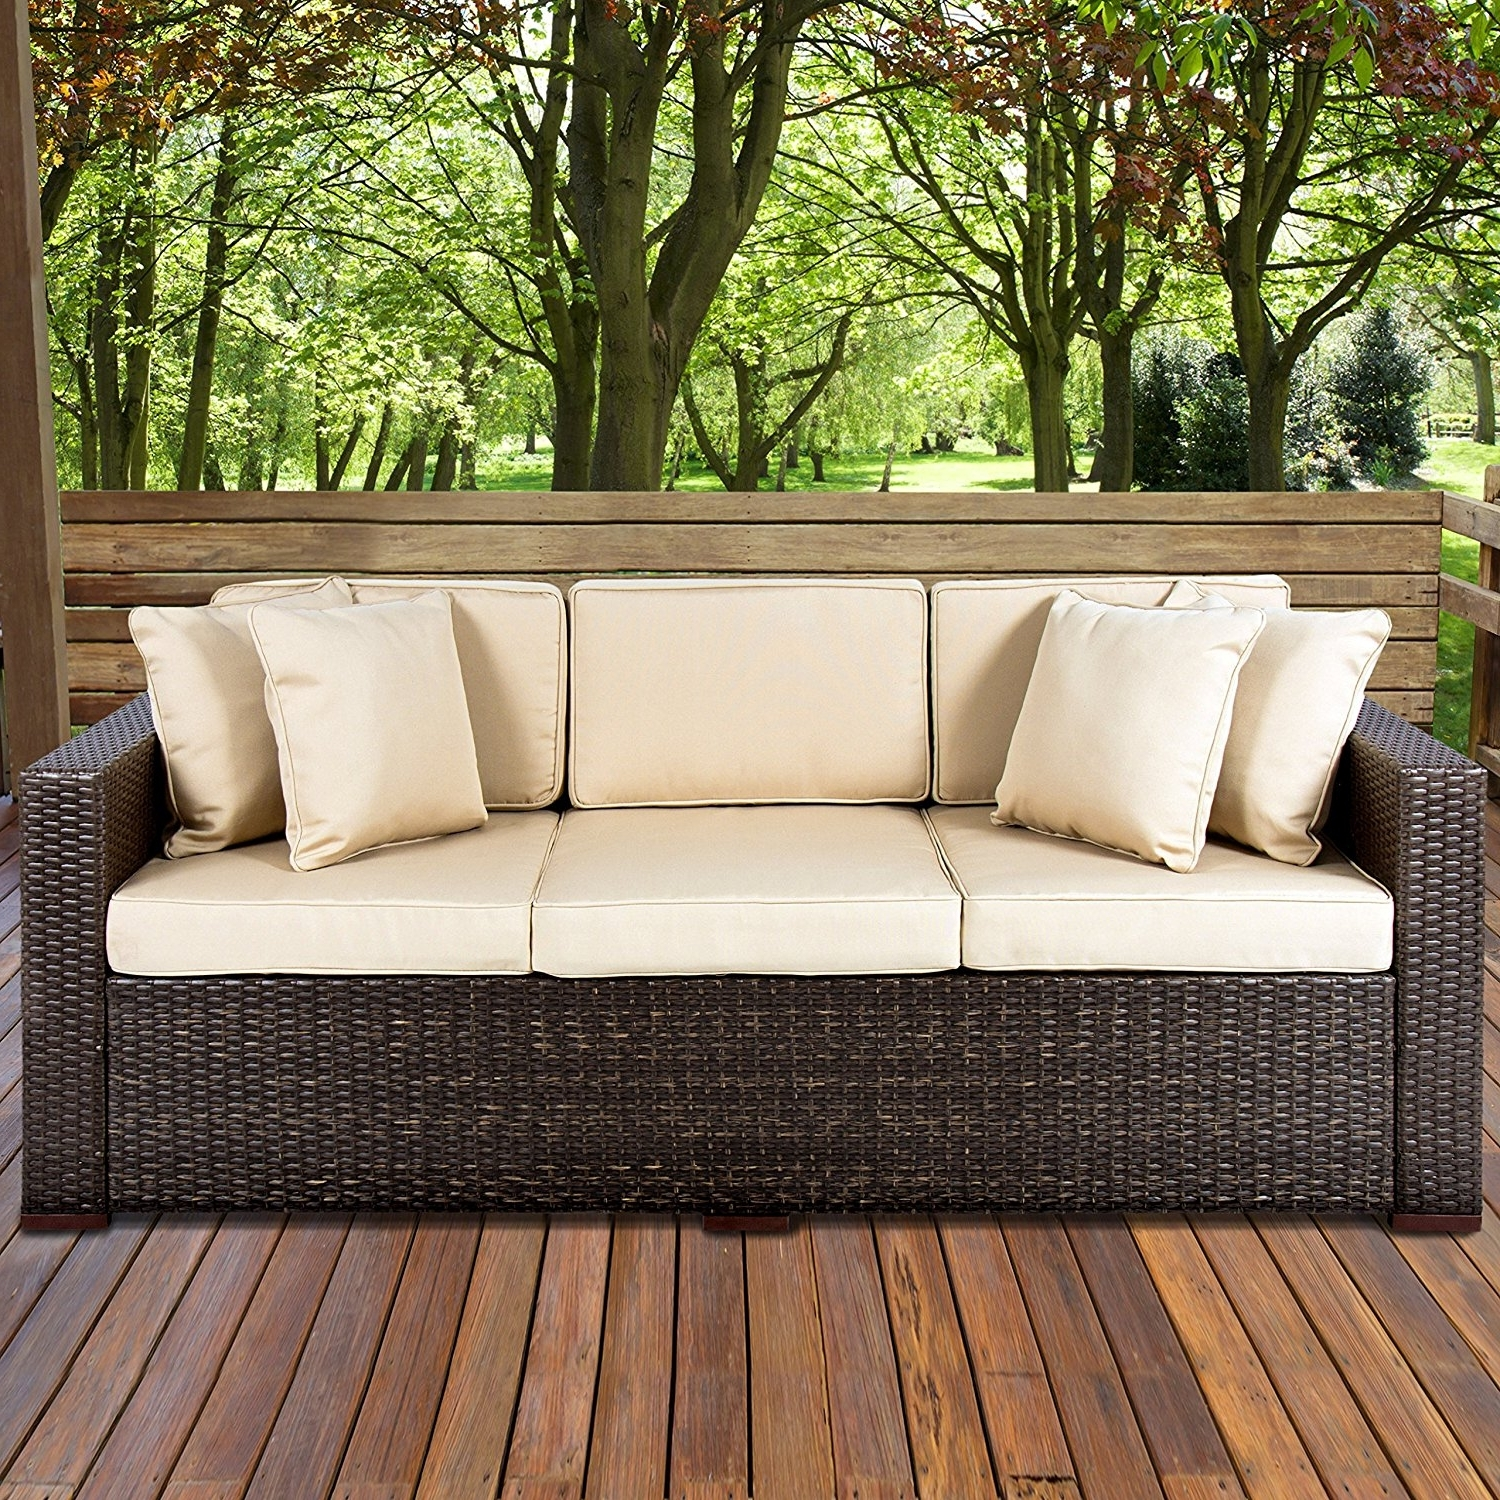 Amazon : Best Choiceproducts Outdoor Wicker Patio Furniture throughout Most Recent Patio Sofas